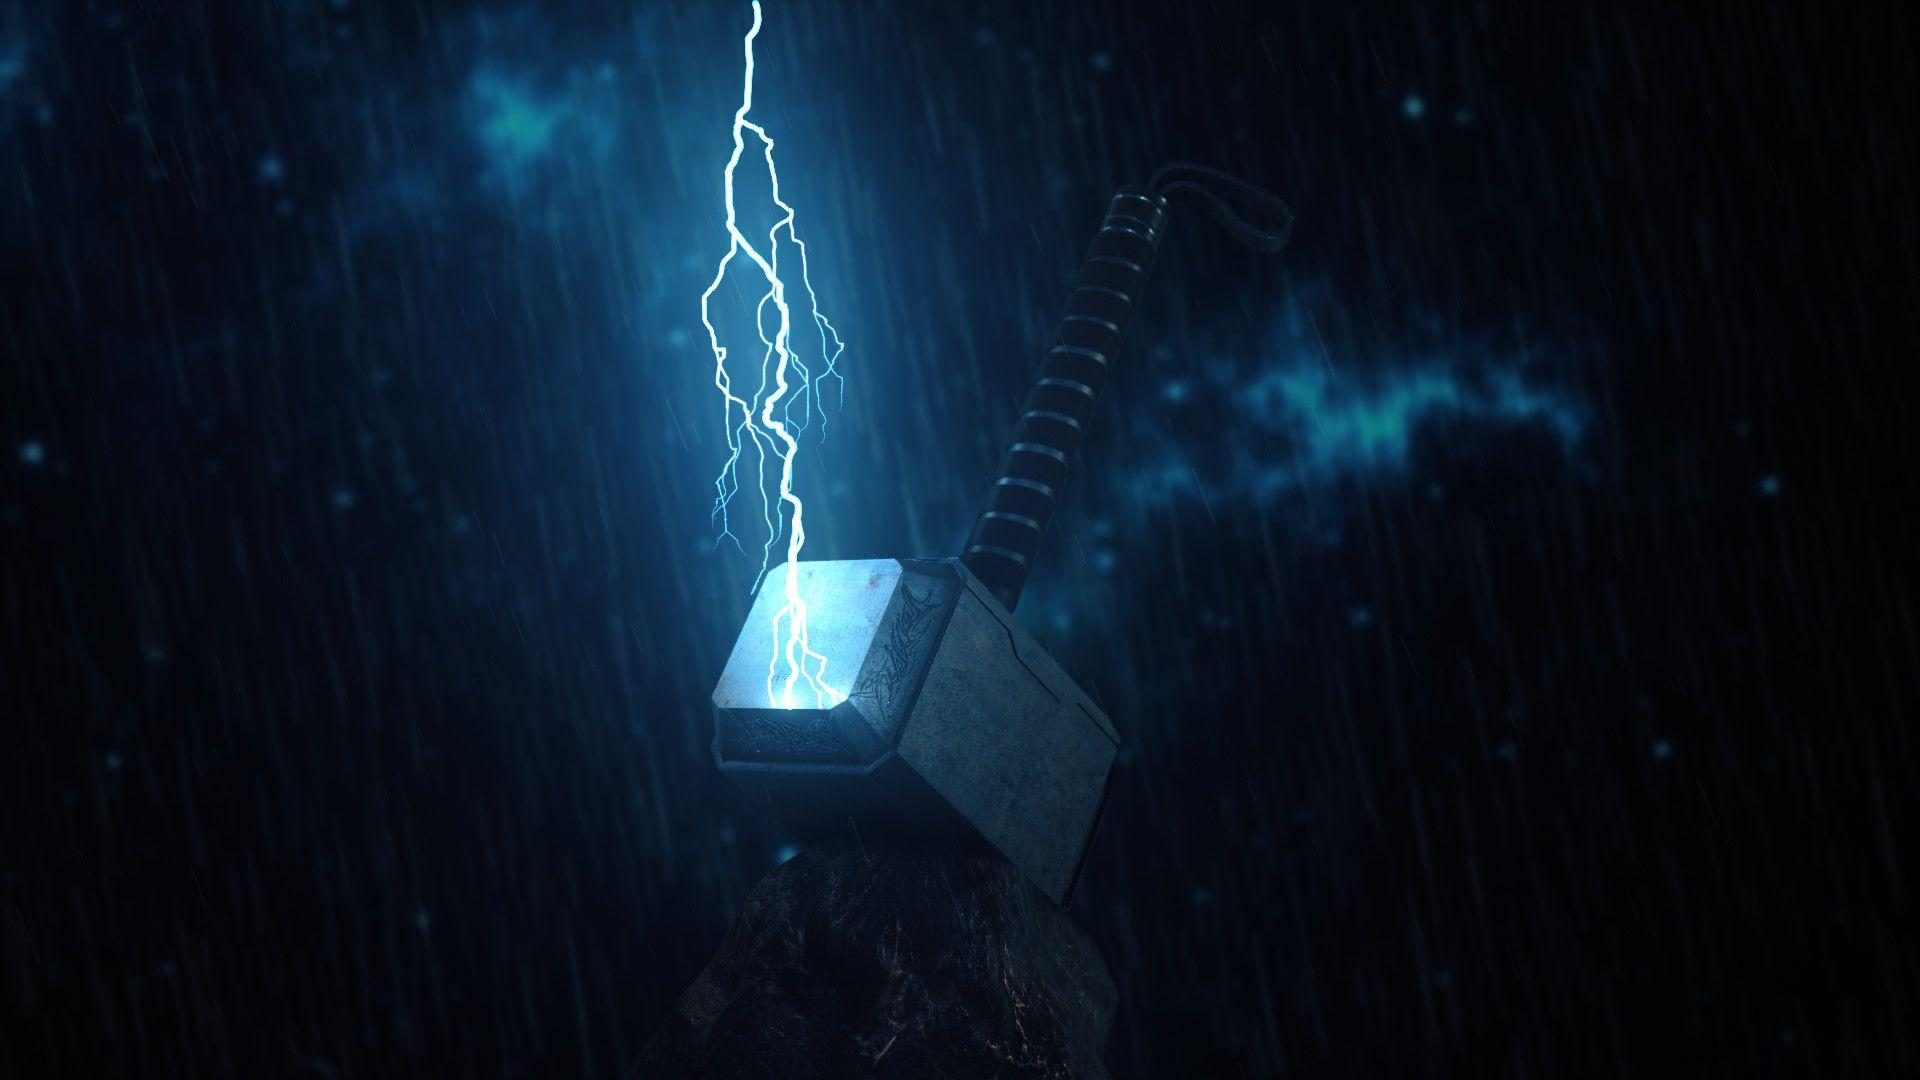 Download Thor Hammer Hd Wallpapers